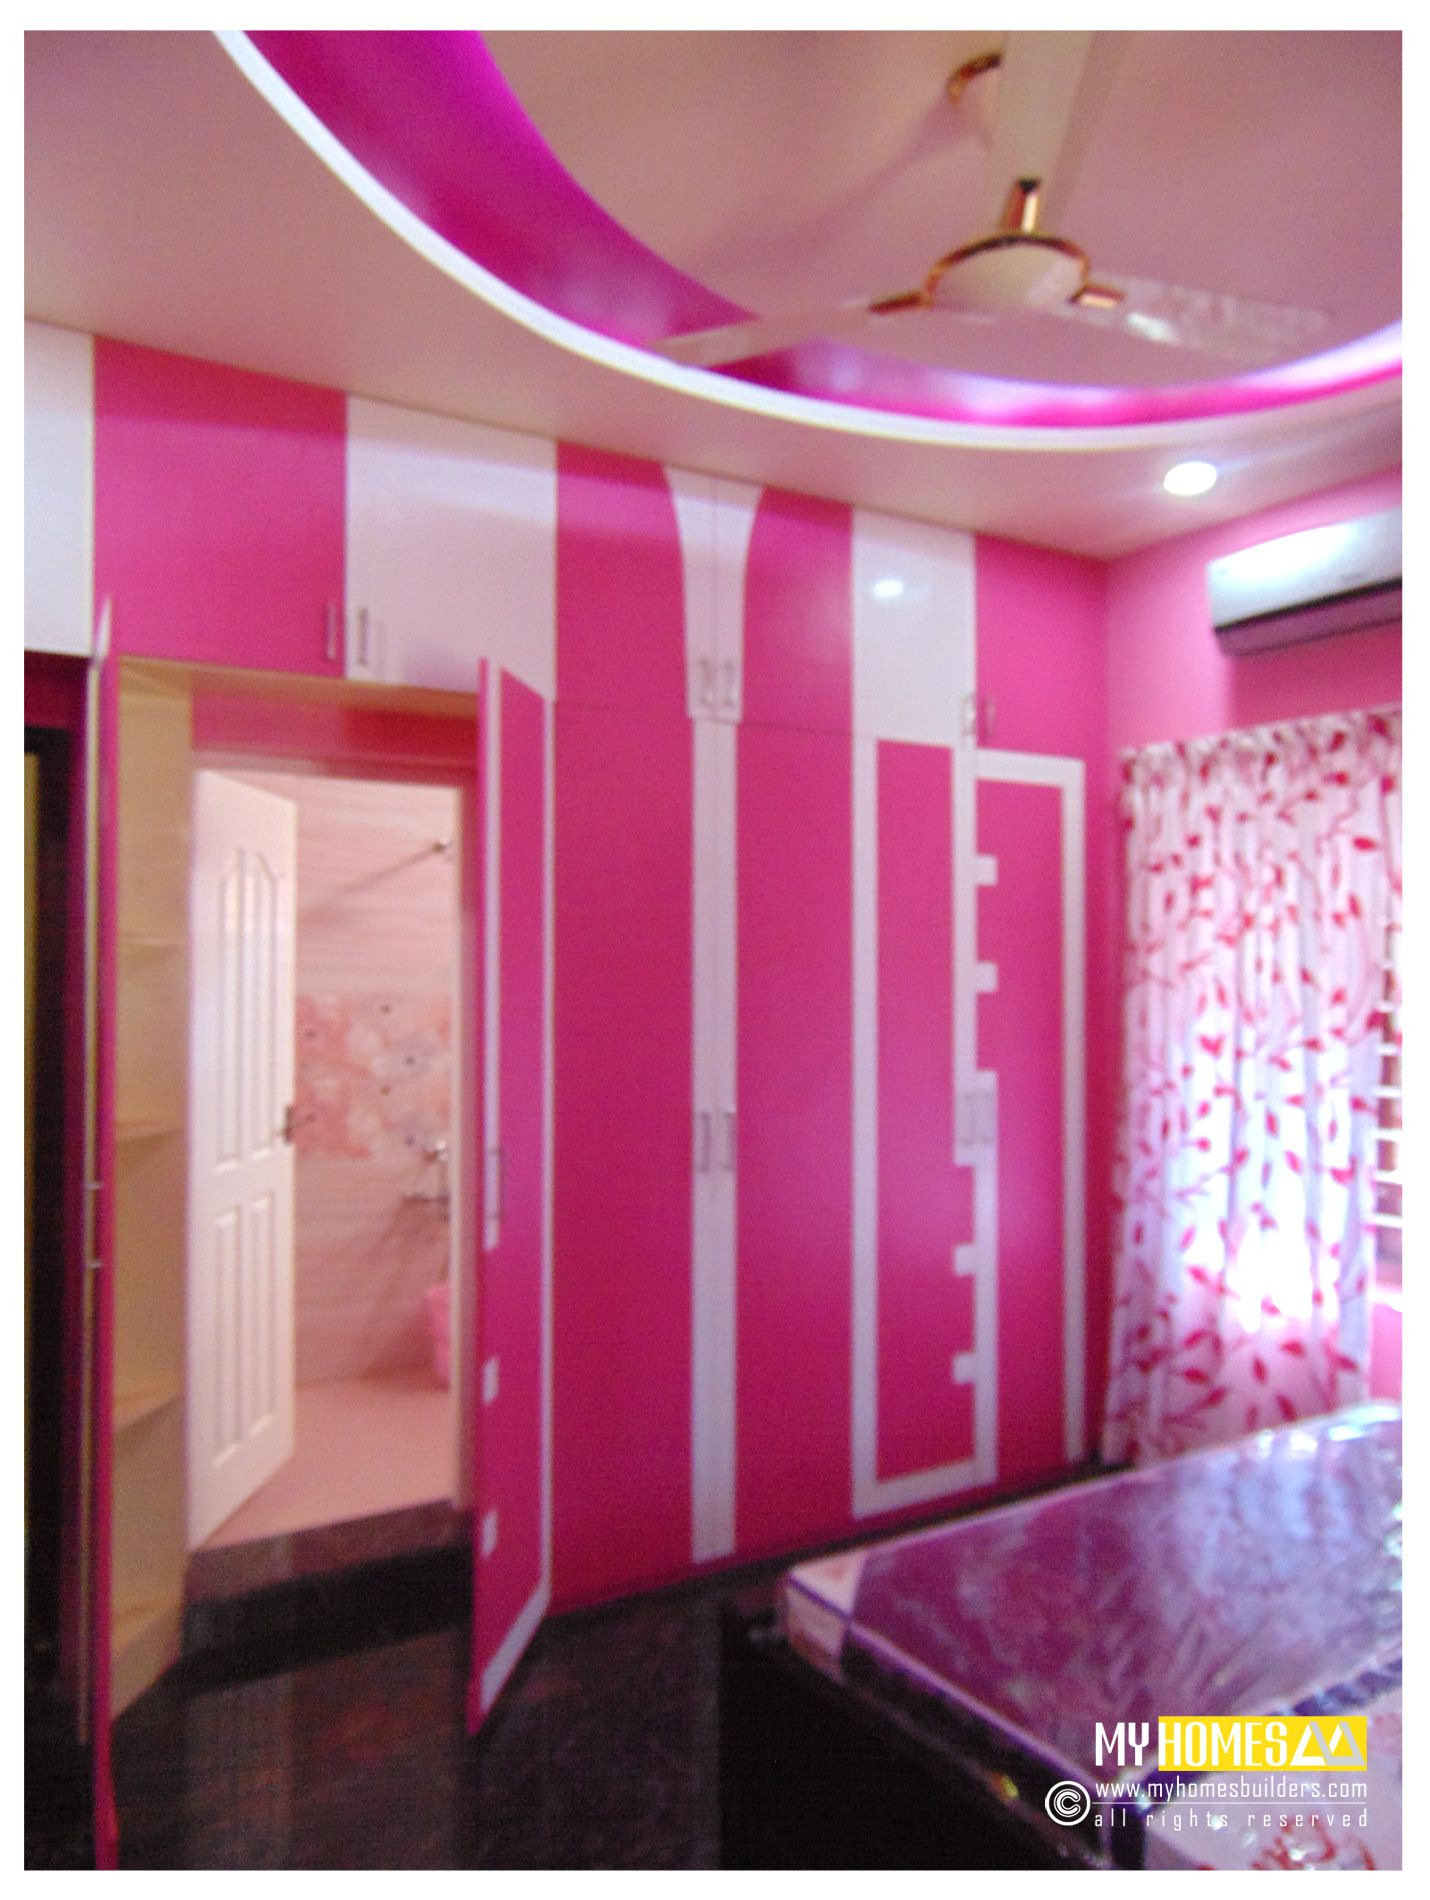 Charmant Kerala Homes Top Bedroom Interior Designs Kerala Best Bedroom Inter Designs  For One Of Our Client From Thrissur Kerala